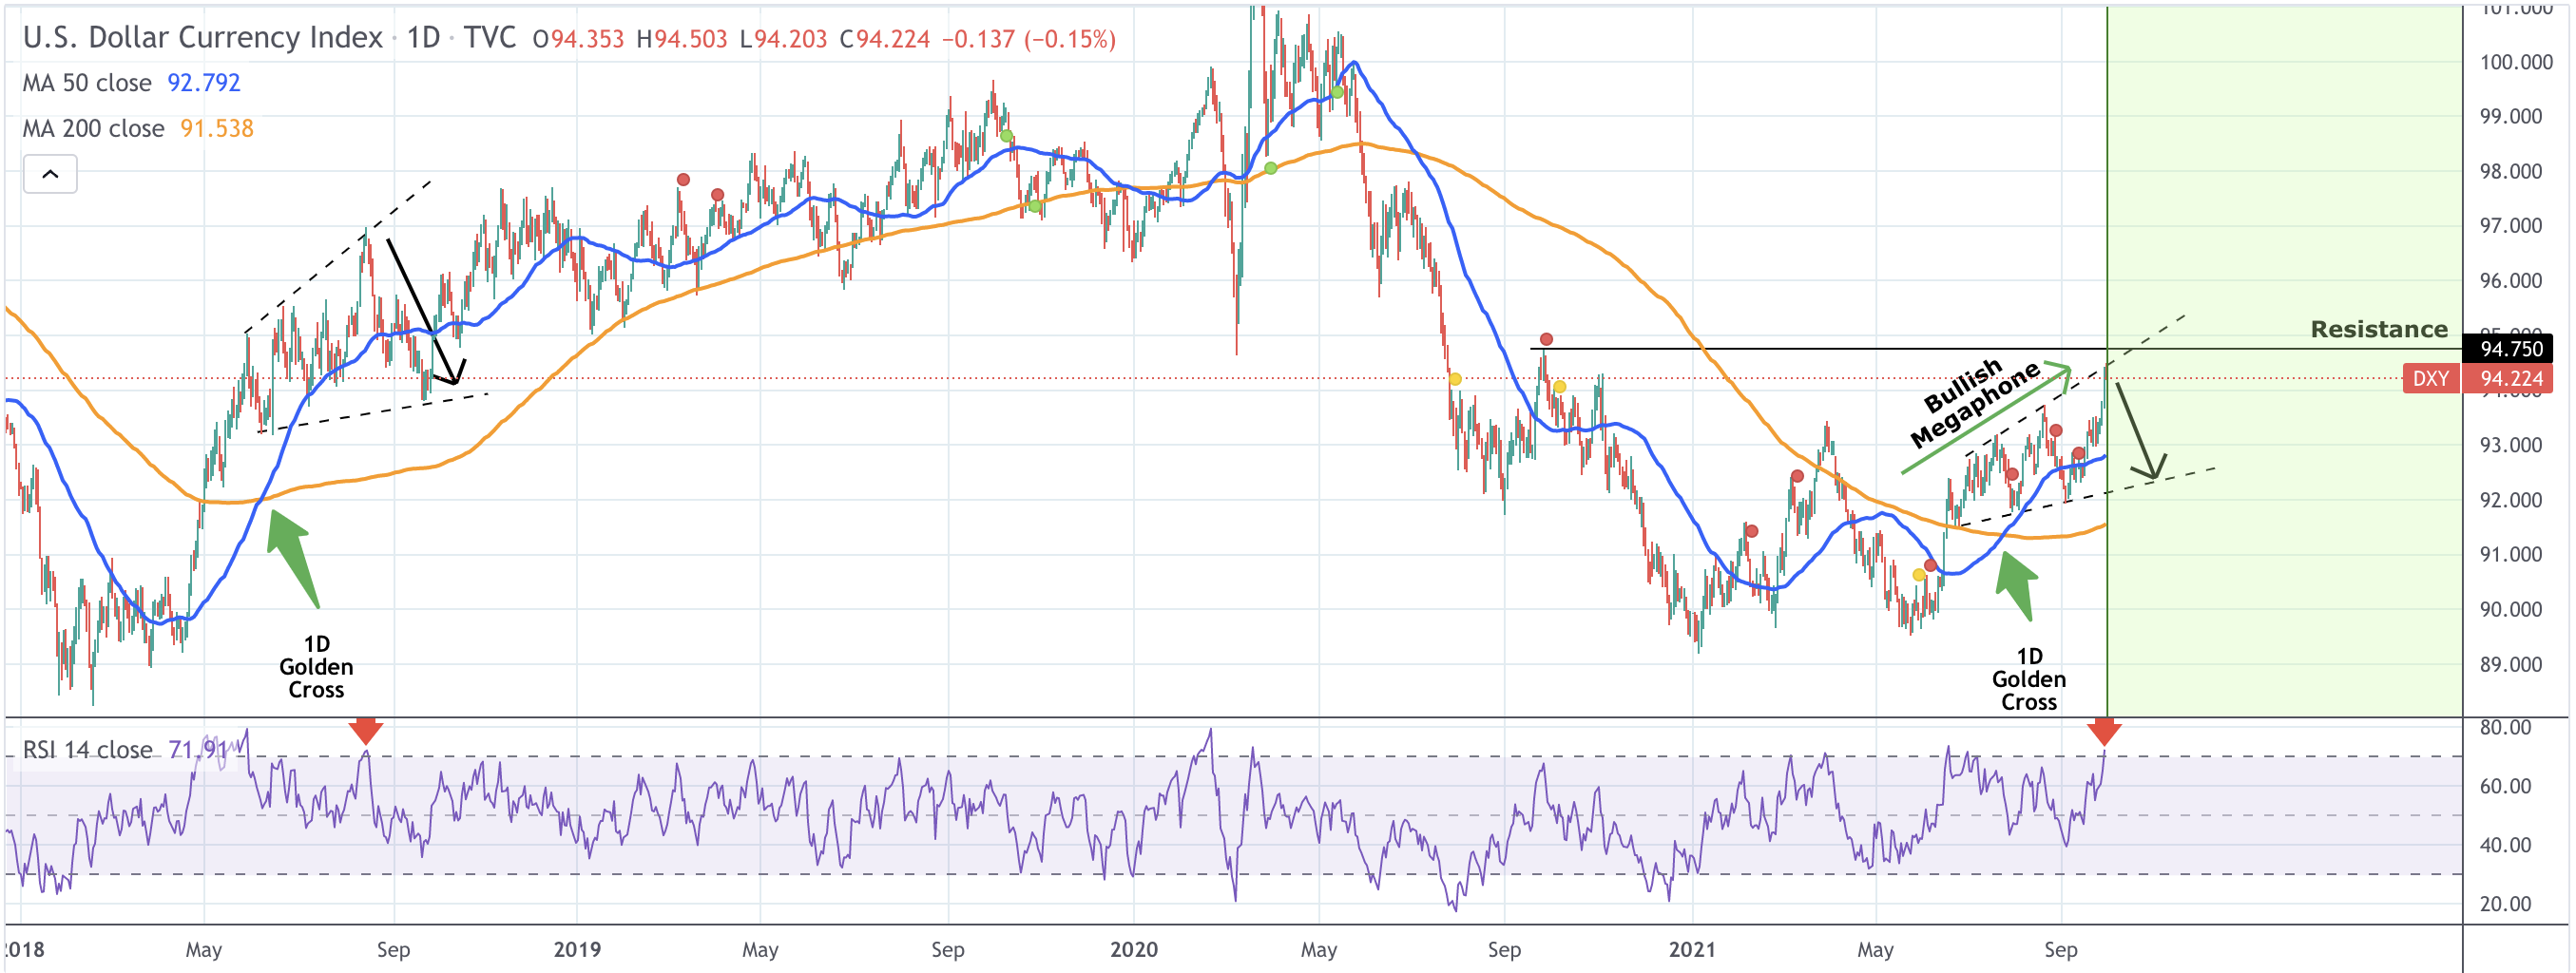 YourCryptoMind e21d41ac-183e-412a-9ae3-2bf77d619e77 Bitcoin price eyes $50K as the US dollar retreats after hitting its one-year high